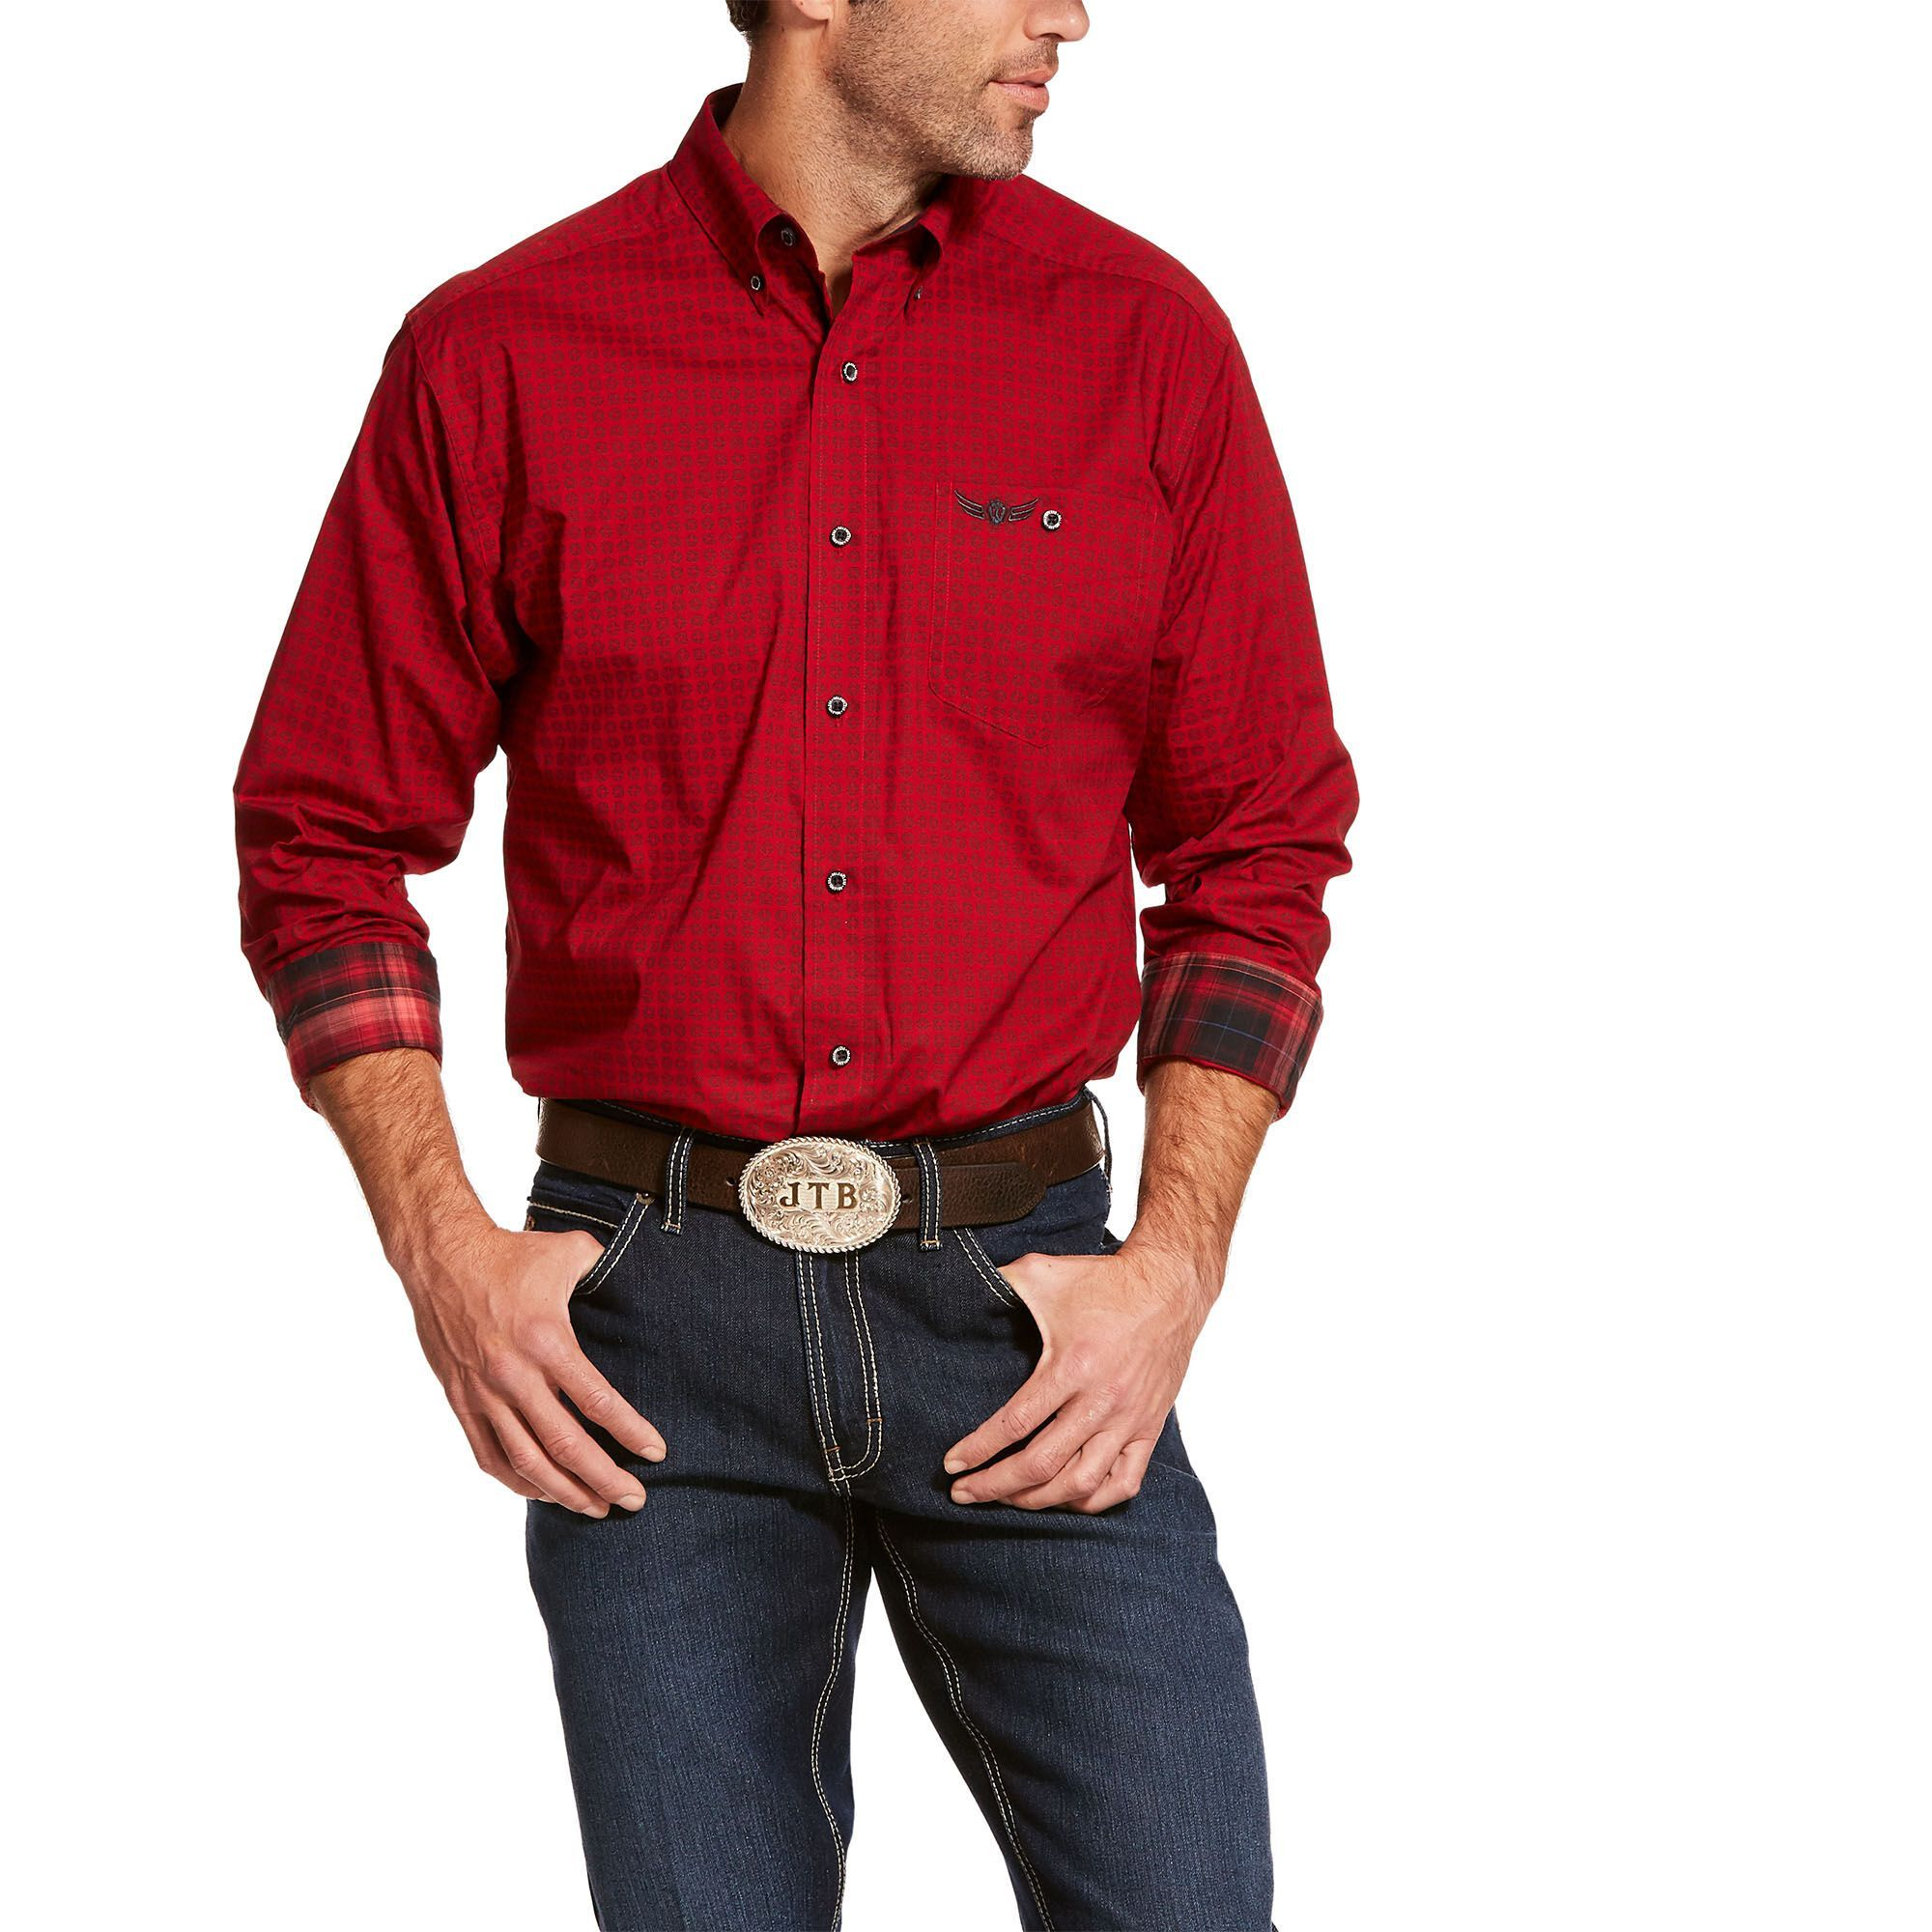 Mens Relentless Power Stretch Classic Fit Shirt in Laylow Red Cotton 2X-Large by Ariat - Fitness Shi...